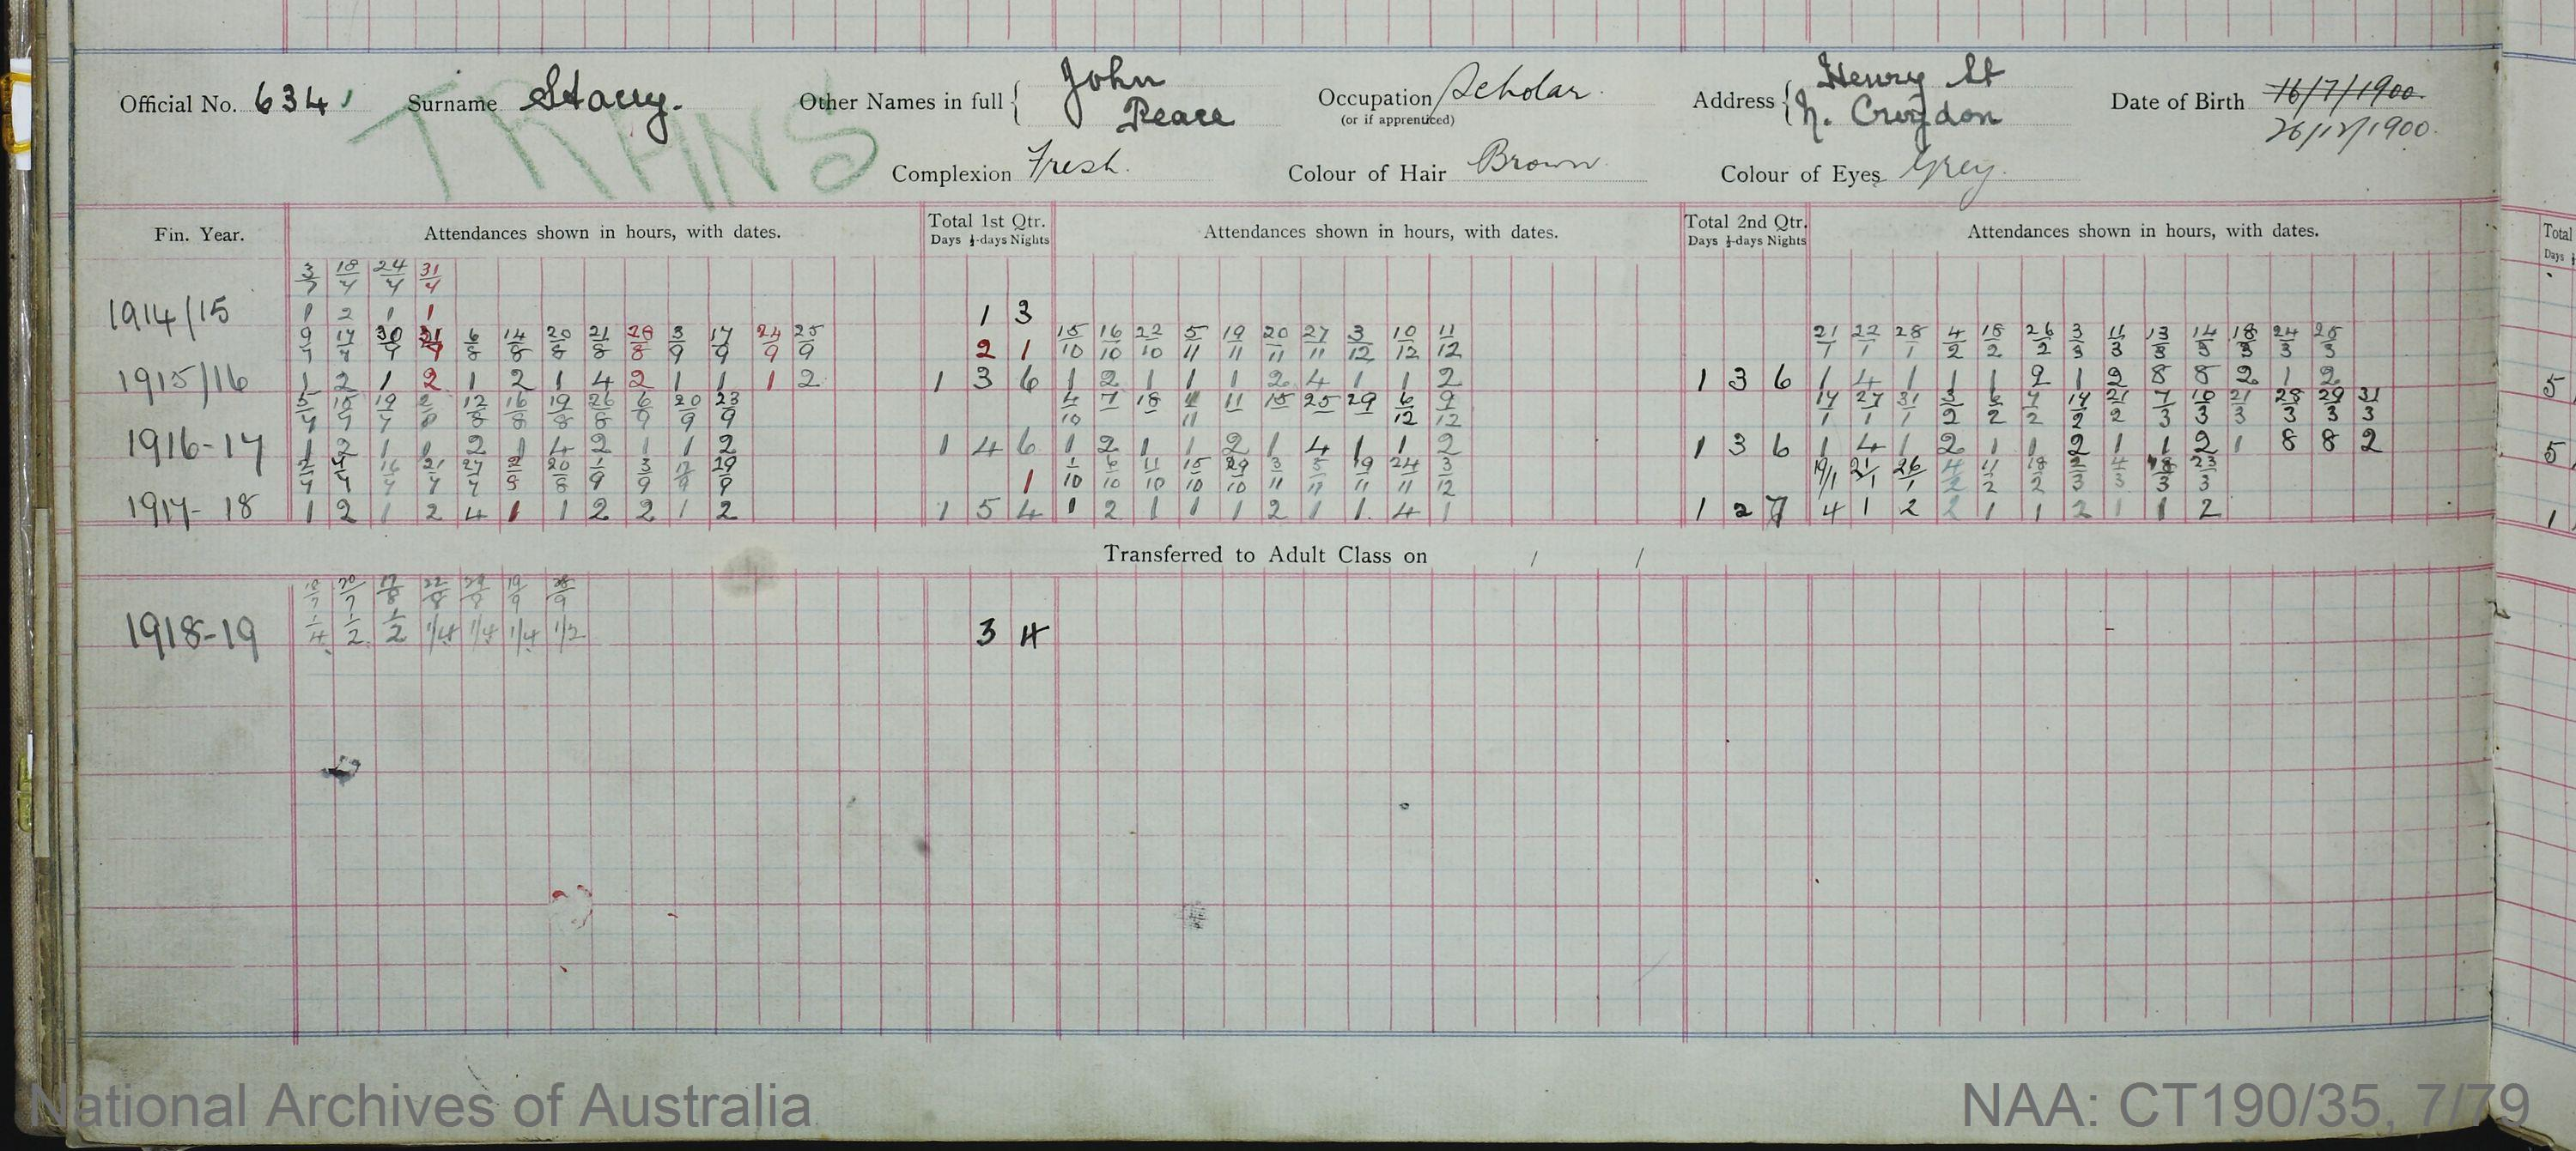 SURNAME - STACEY;  GIVEN NAME(S) - John Peace;  OFFICIAL NUMBER - 634;  DATE OF BIRTH - 26 December 1900;  PLACE OF BIRTH - [Unknown];  NEXT OF KIN - [Unknown];  SERVICE/STATION - South Australia;  REGISTRATION DATE - January 1914